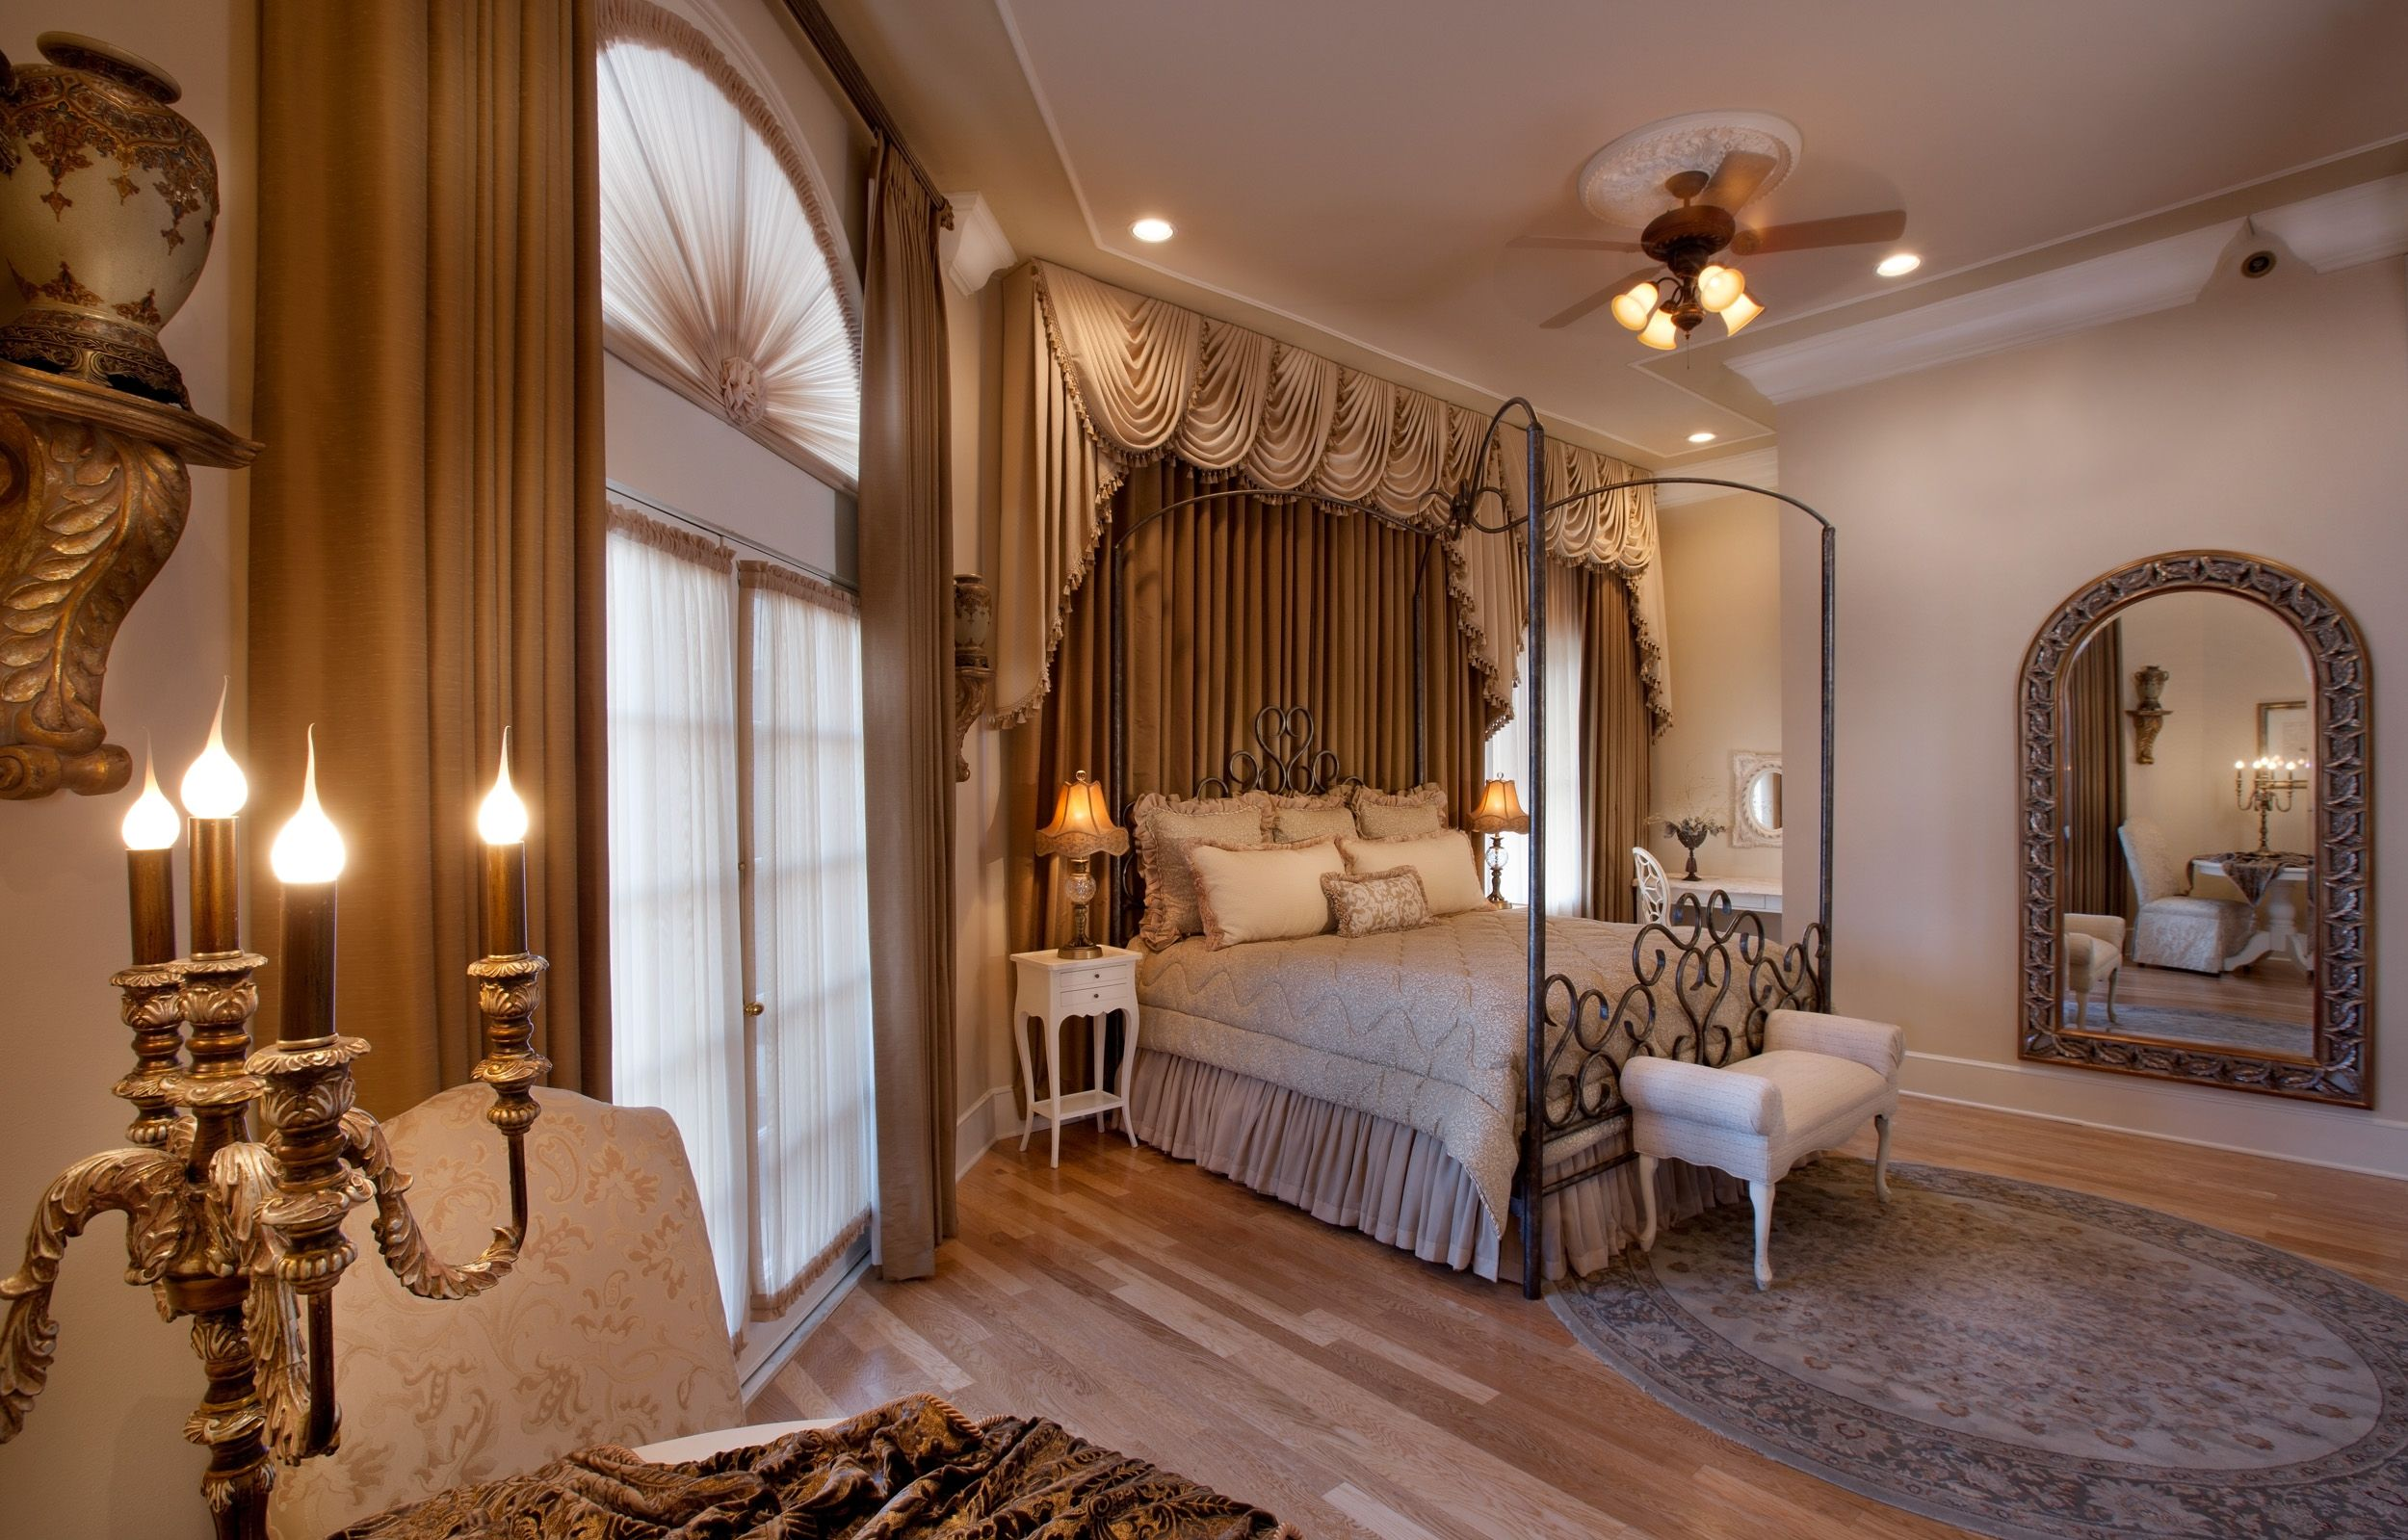 The Driskill Hotel Is One Of Leading Downtown Austin Hotels Known For Being A Por Texas S Renaissance Bridal Suite